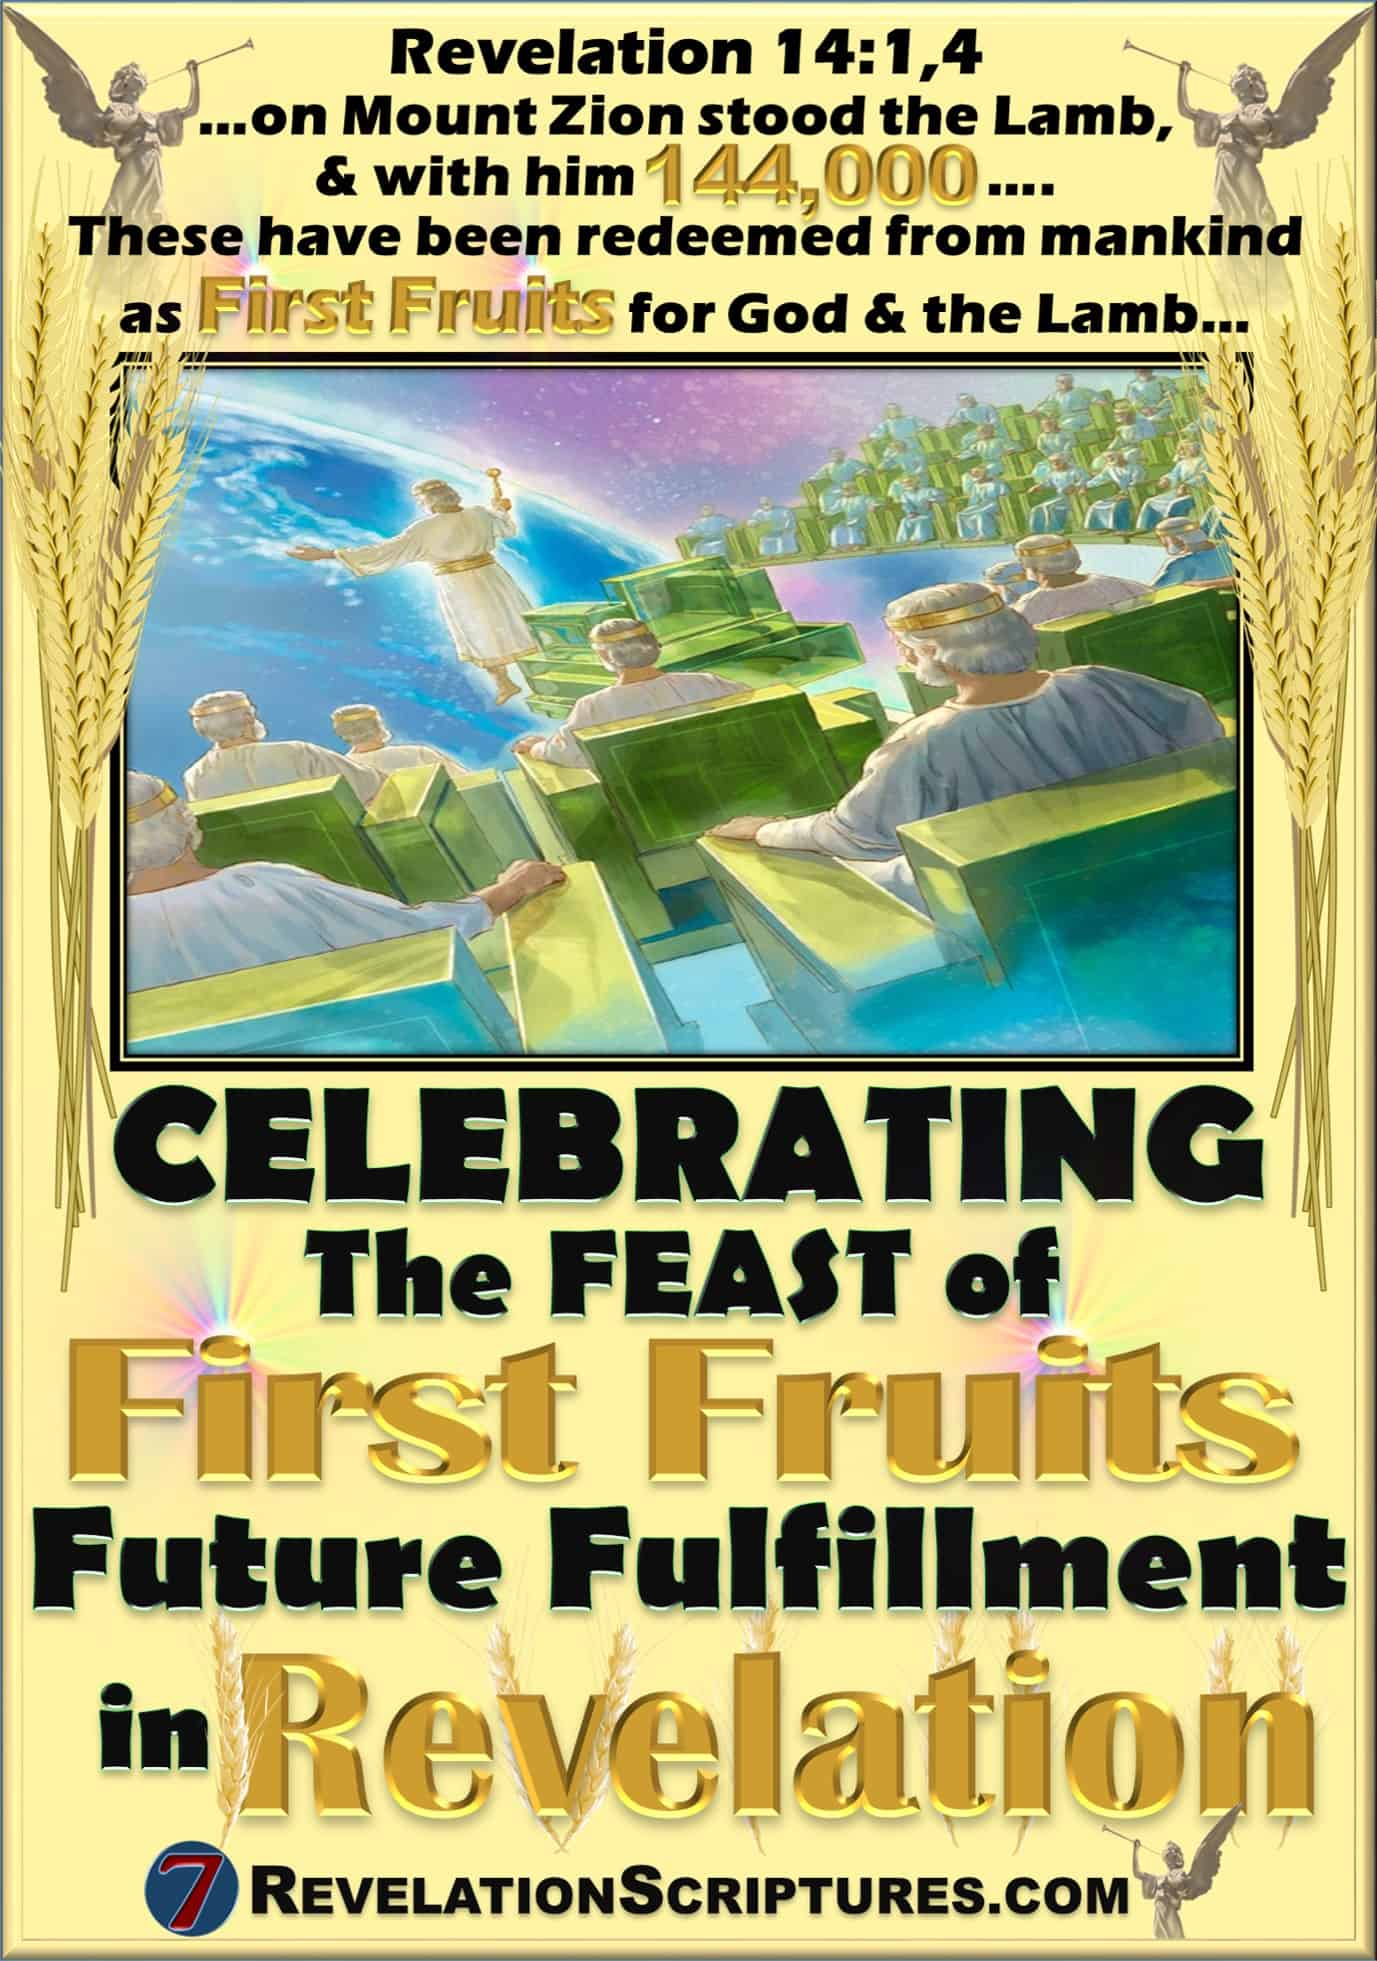 Celebrating the Feast of First Fruits Fulfillment in the